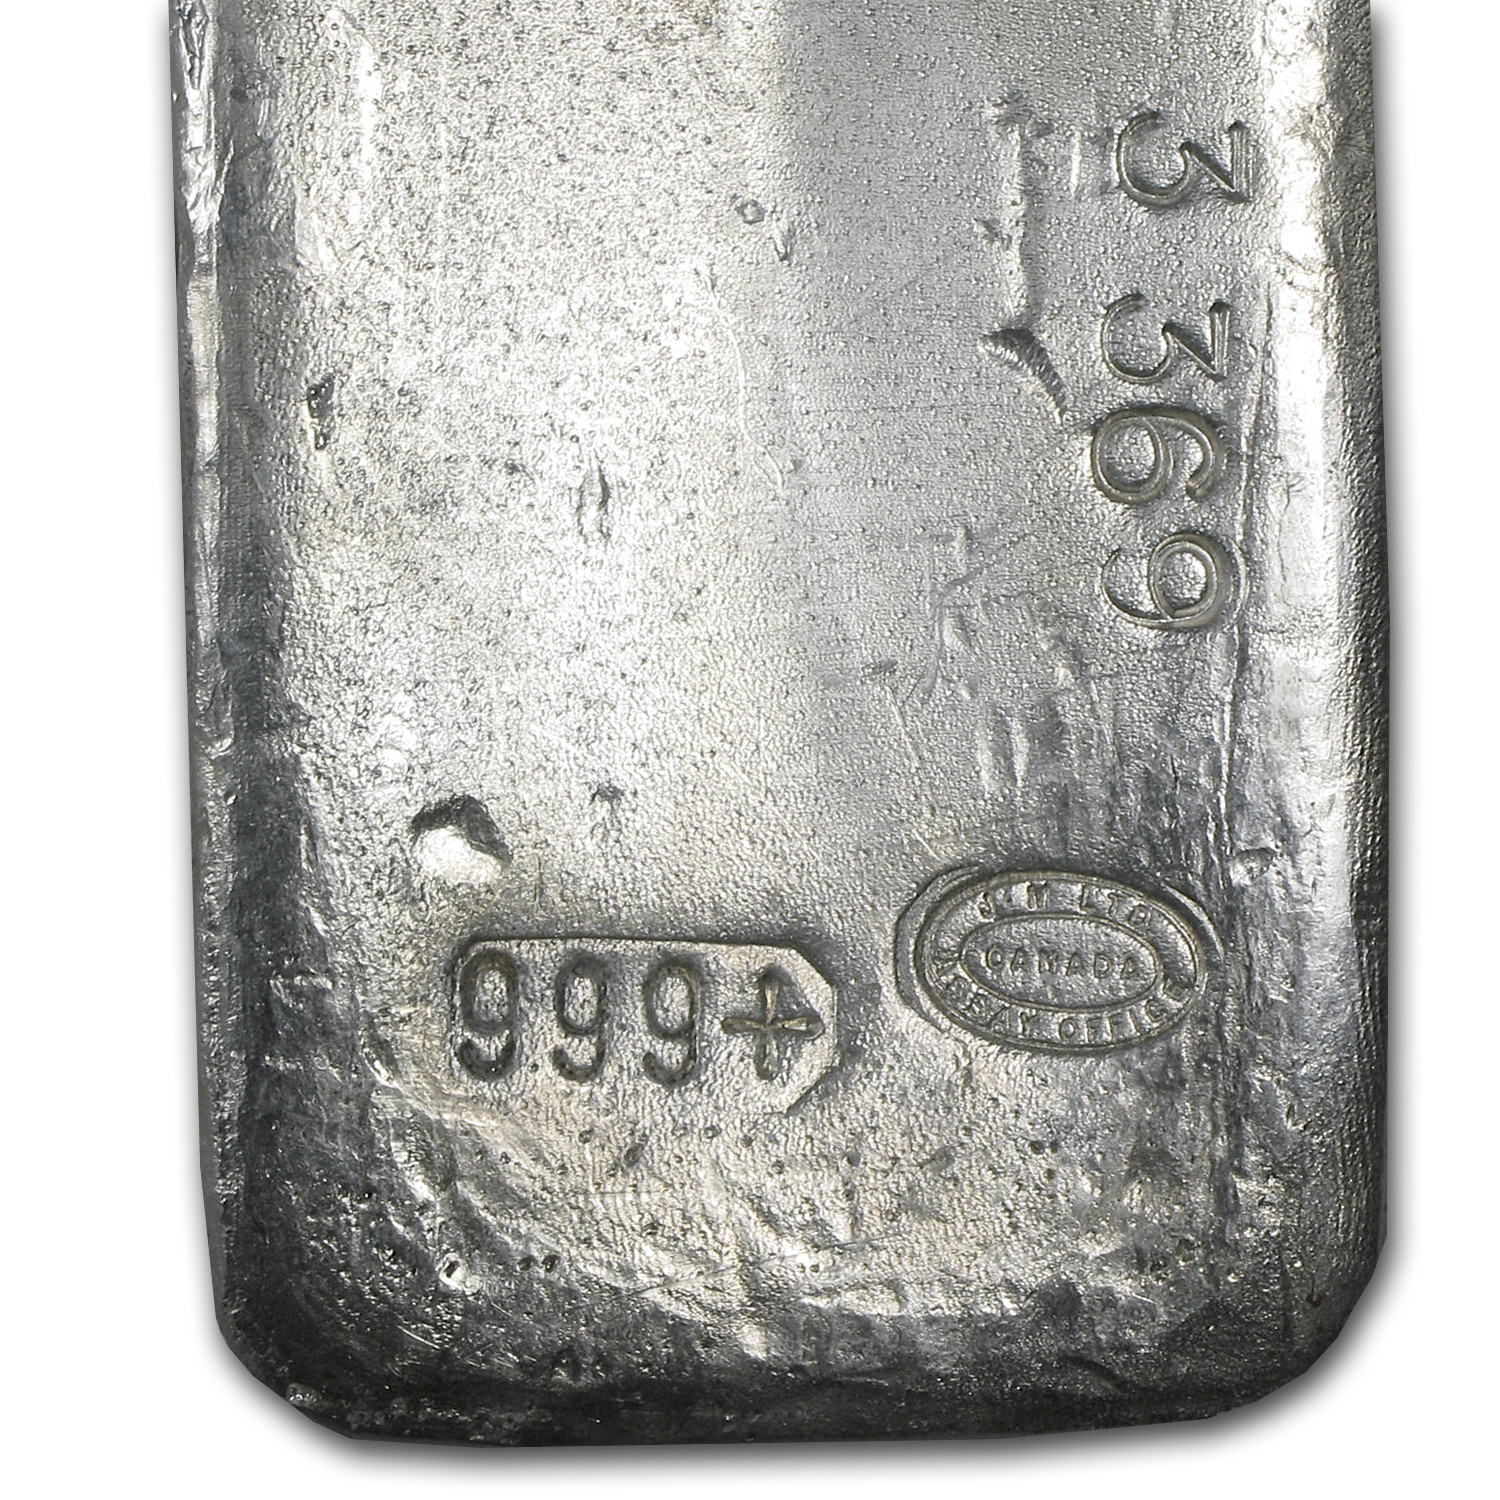 100 oz Silver Bar - Johnson Matthey (Vintage/Canada)